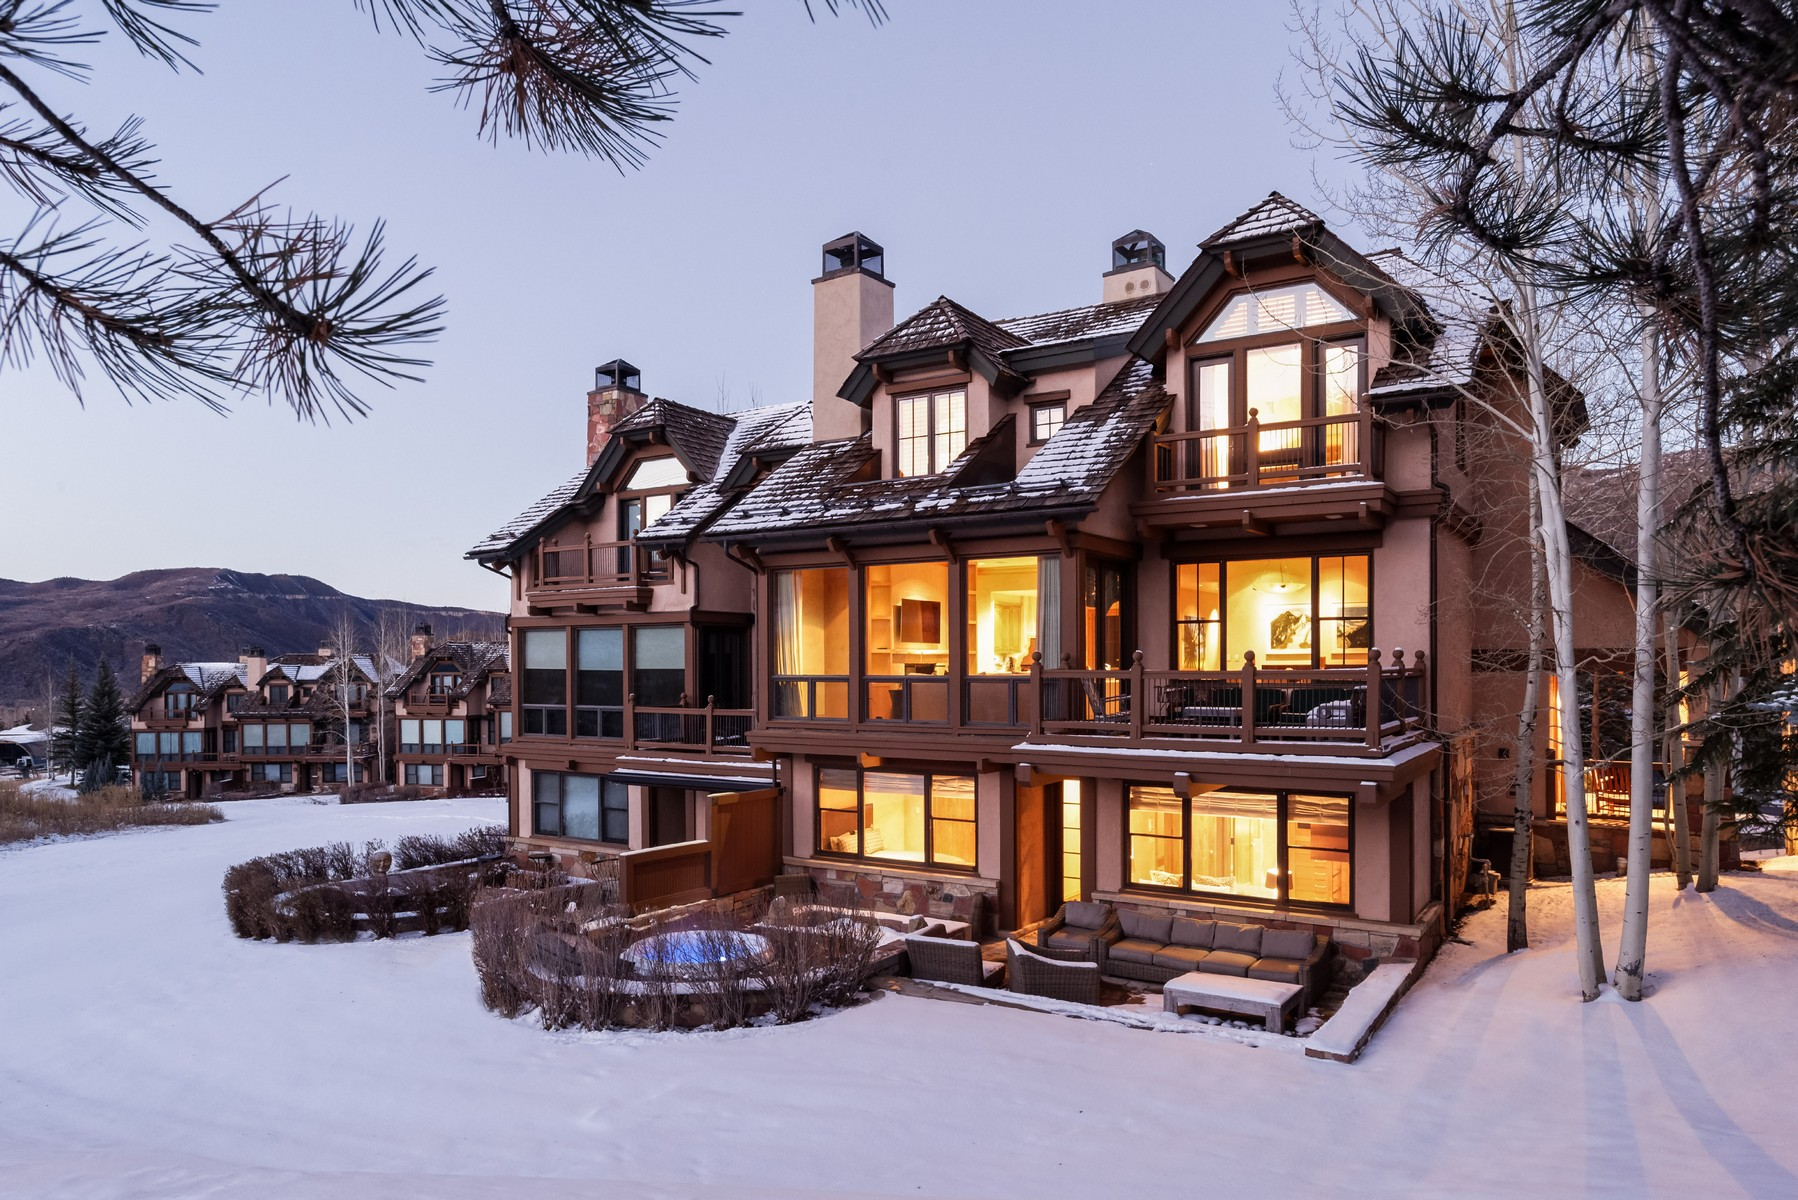 Maison de ville pour l Vente à Owl Creek Home 408 408 Burnt Mountain Drive Snowmass Village, Colorado 81615 États-Unis